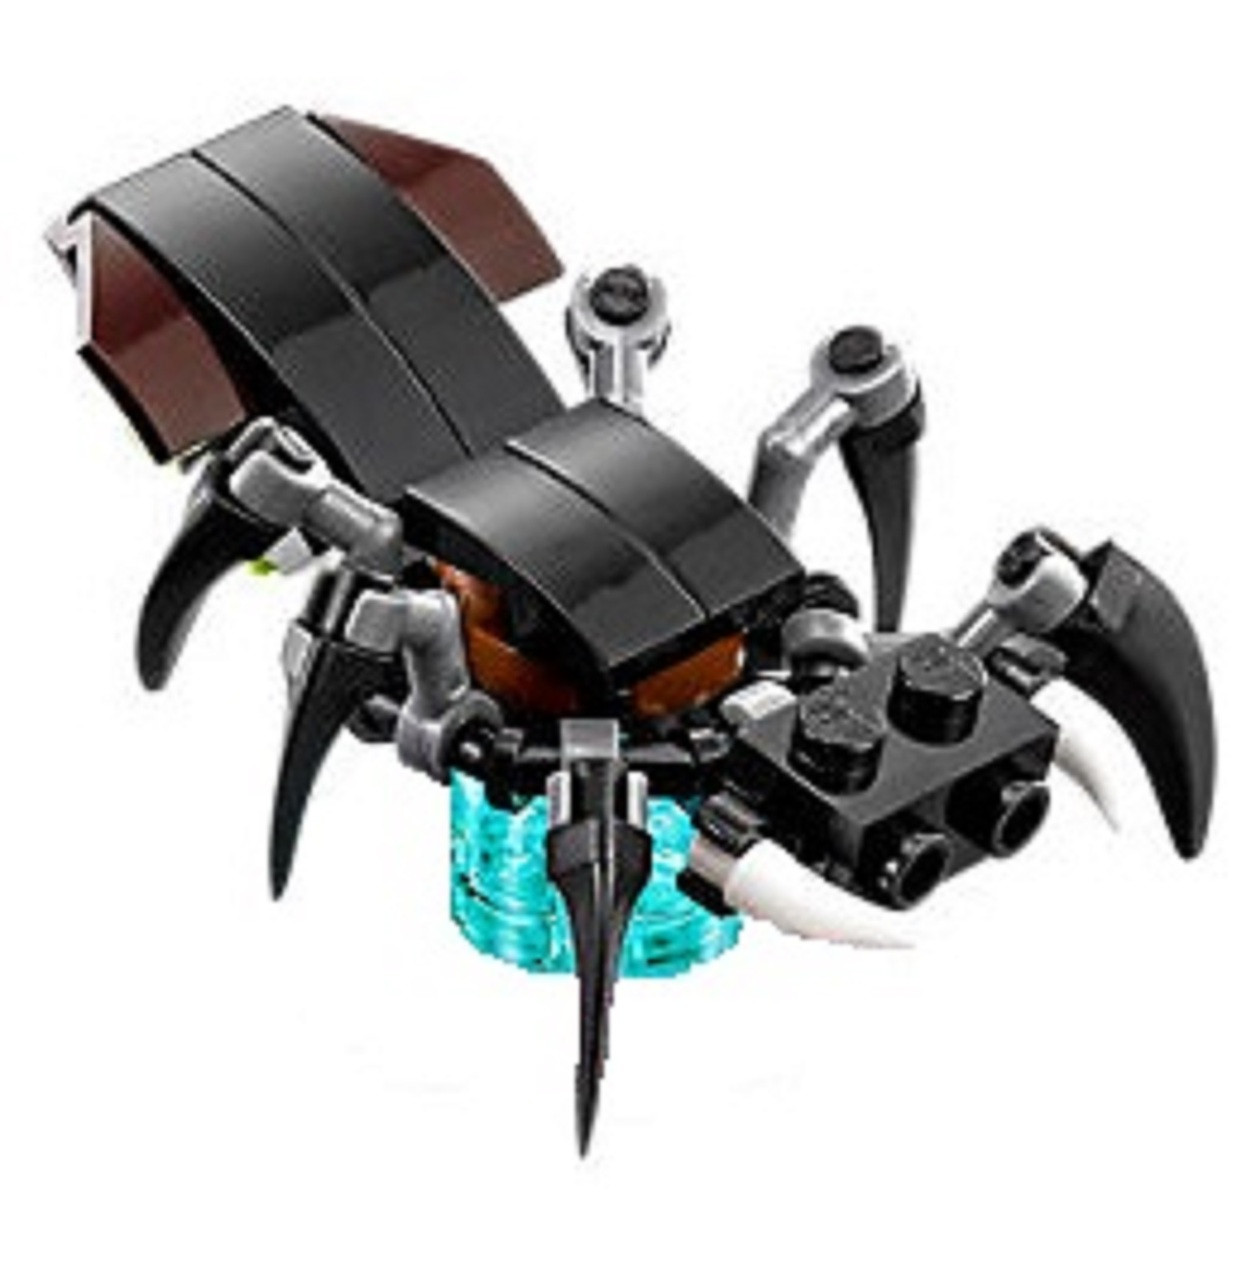 LEGO® Lord of the Rings™ Shelob Spider Minifig - The Brick ...